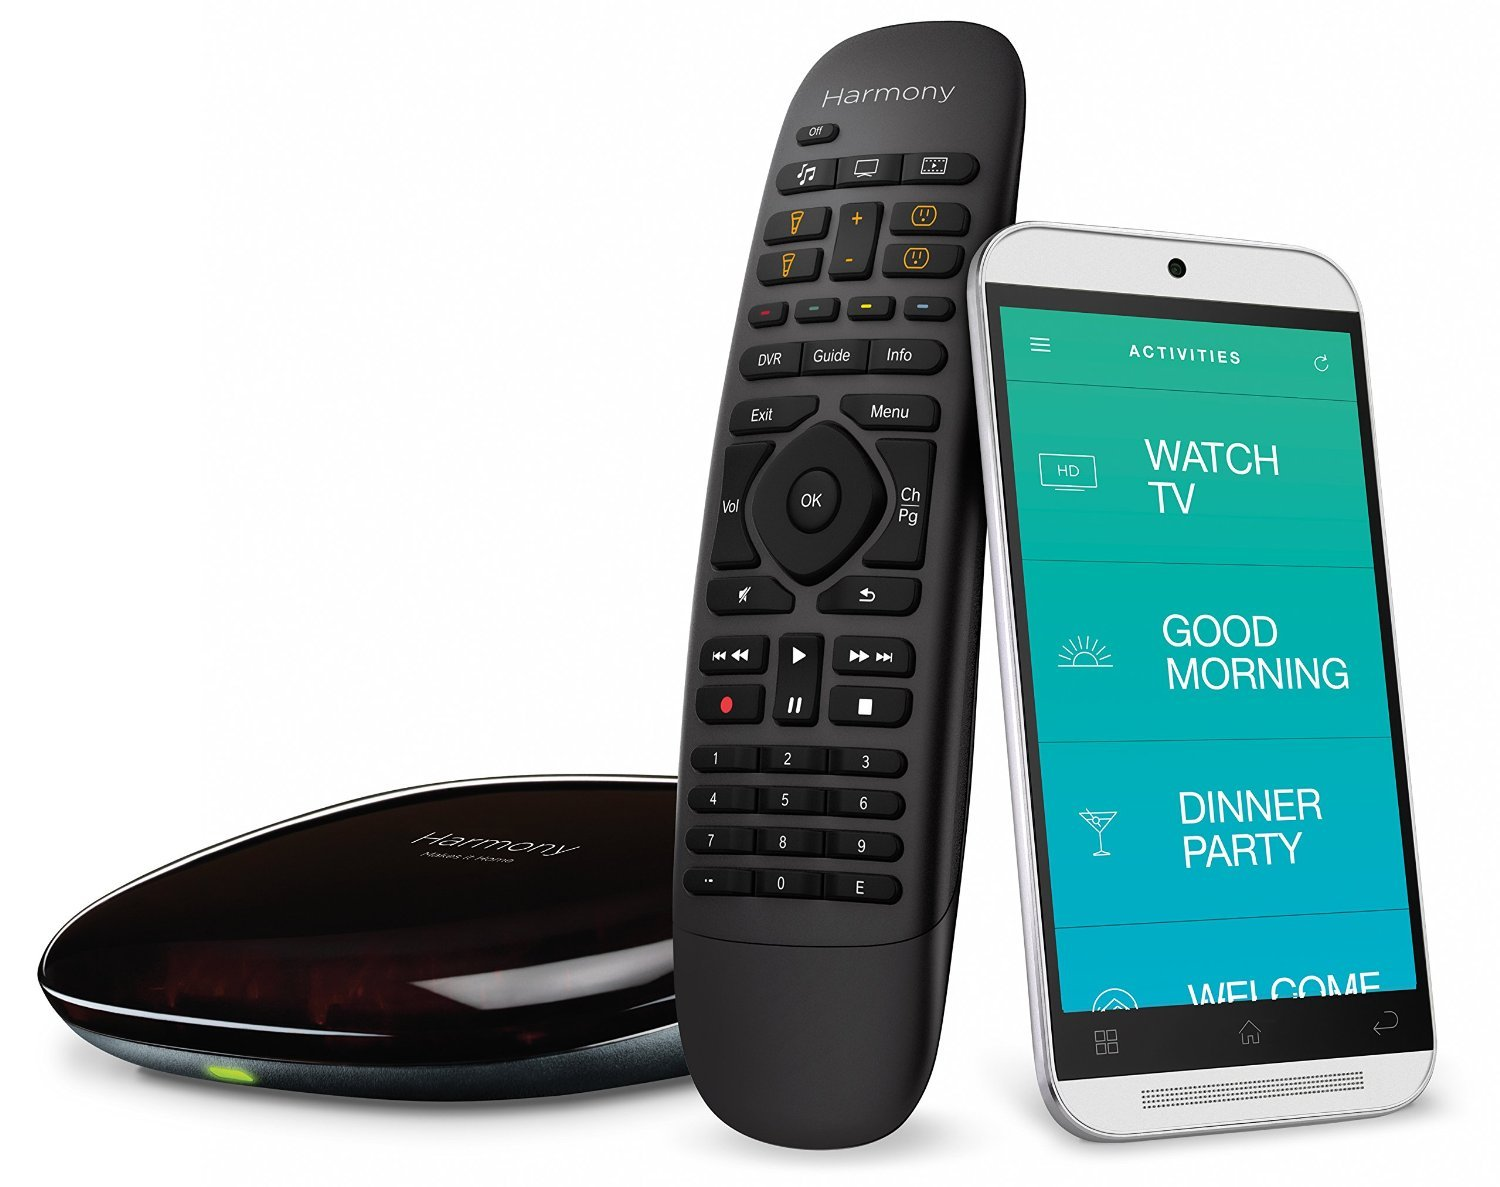 Logitech Harmony Home Control - 8 Devices - Black 915-000239 (Renewed)